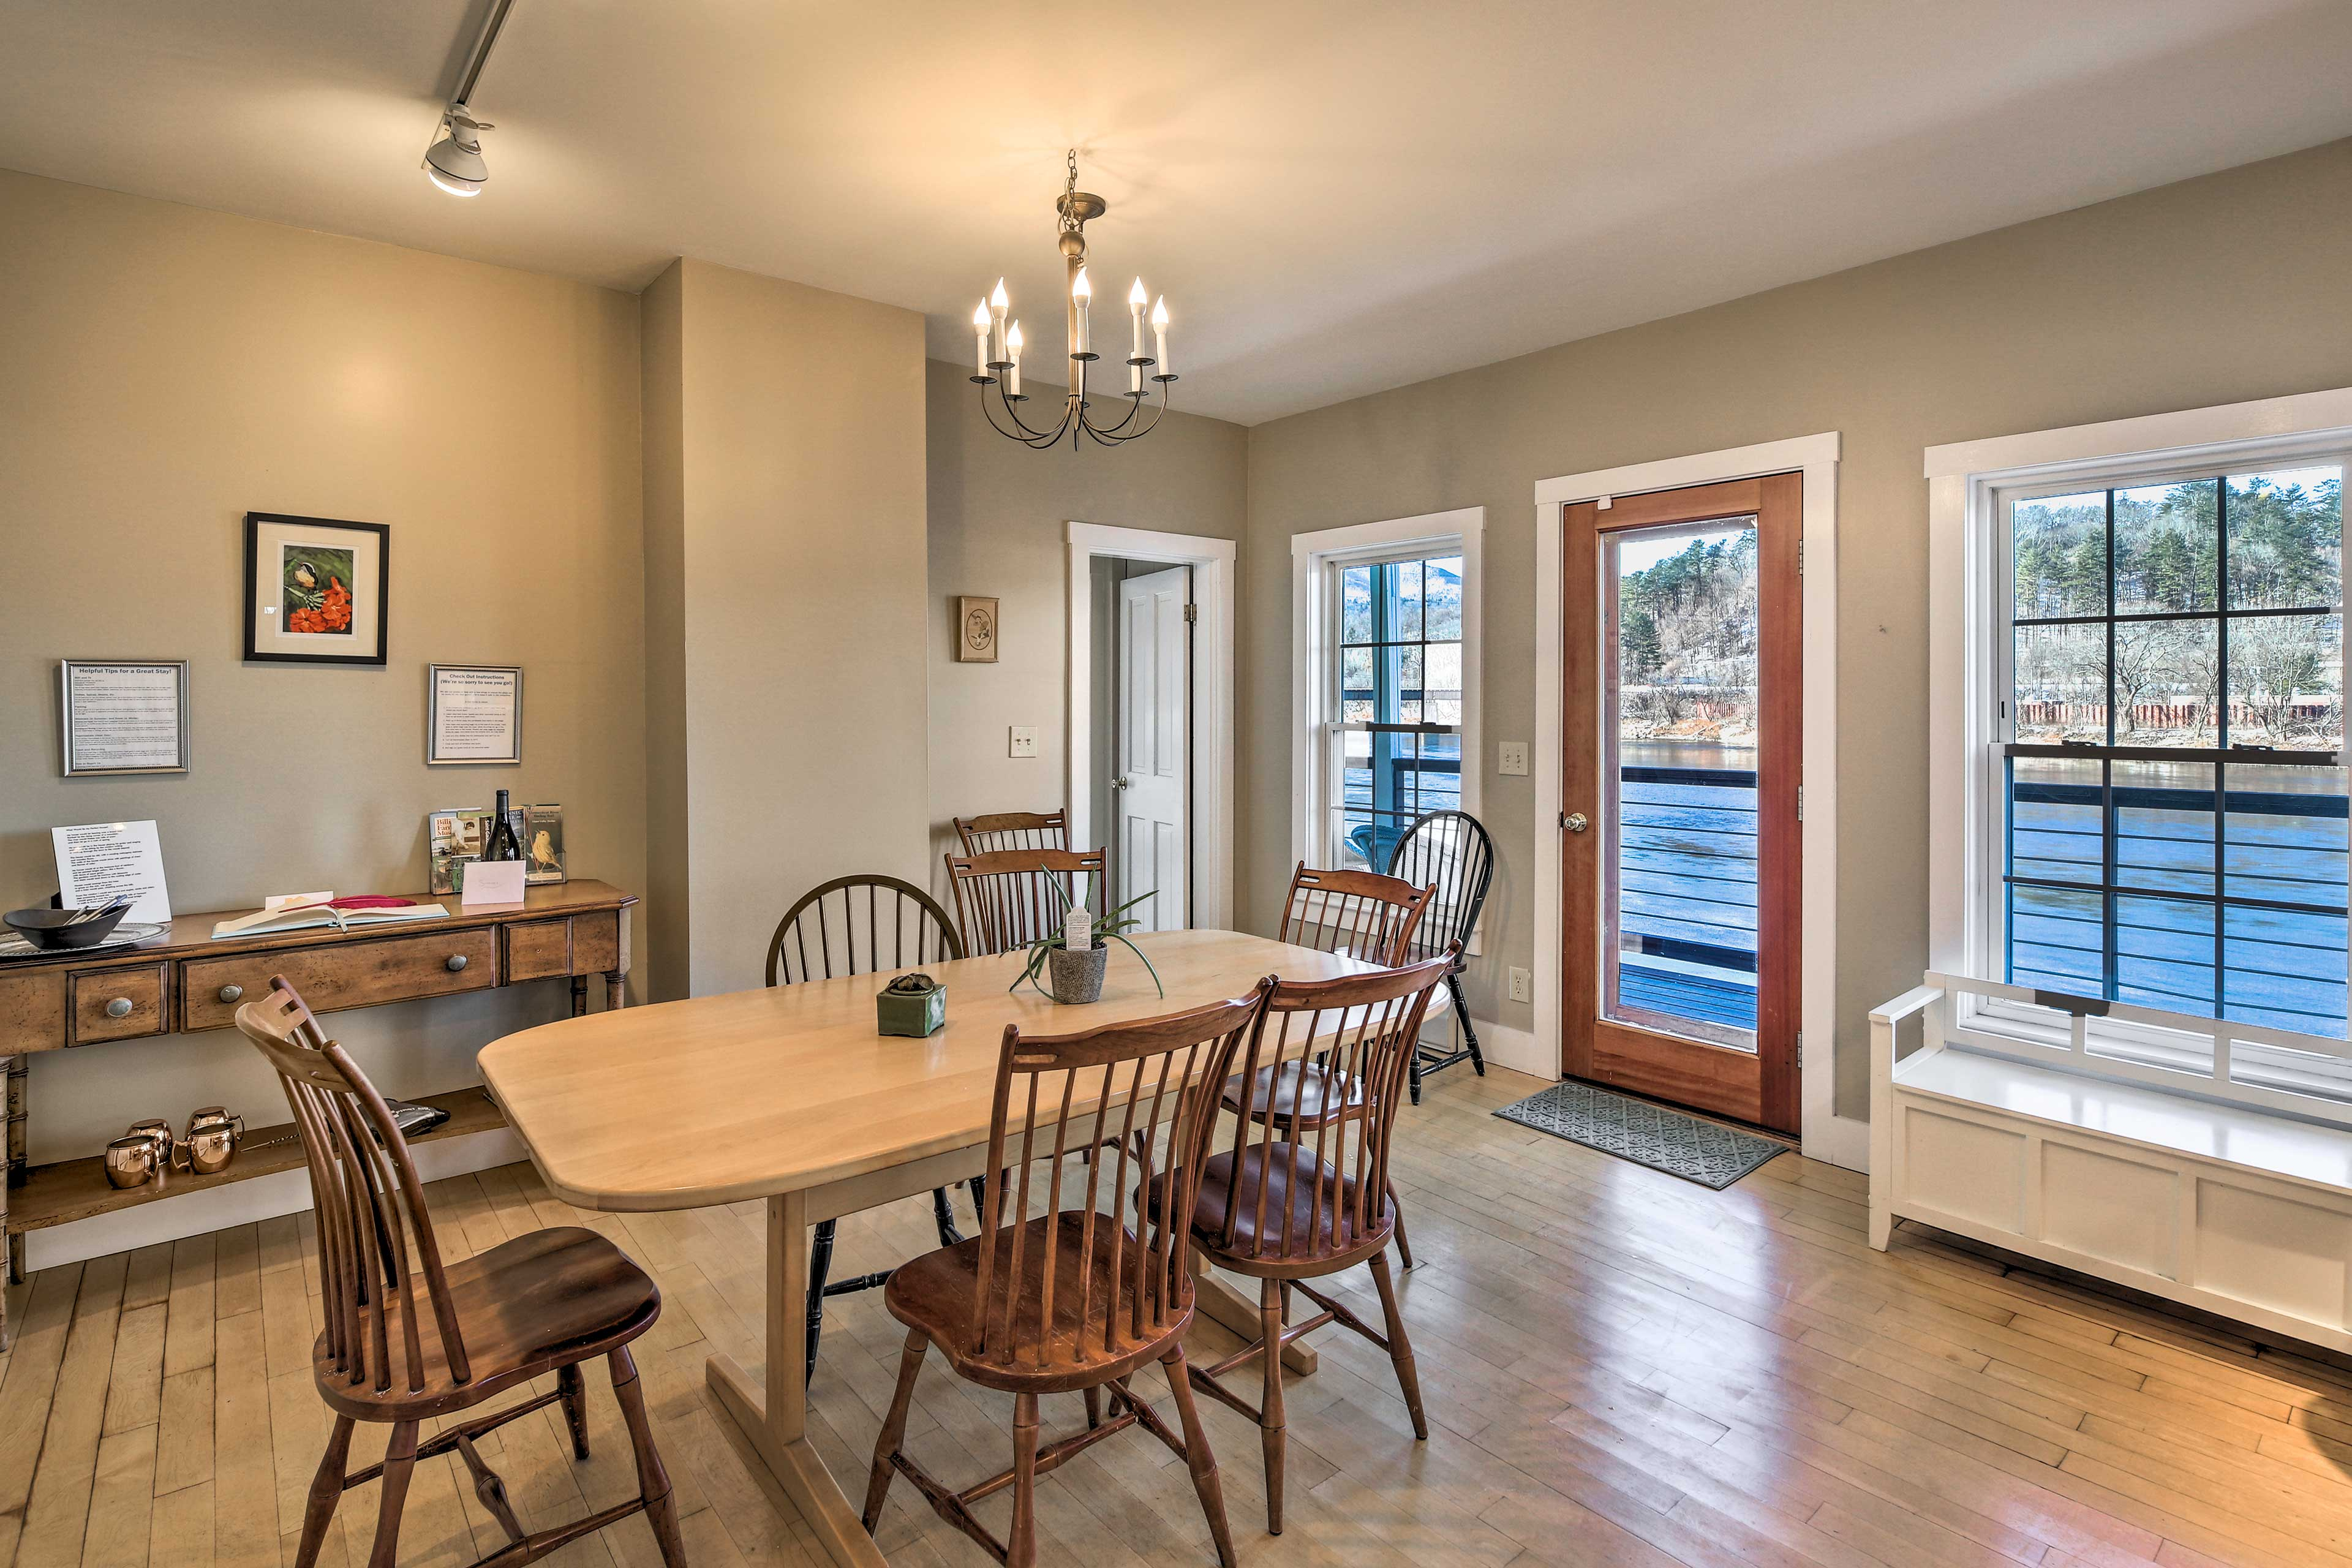 The dining table has seating for 6 guests.